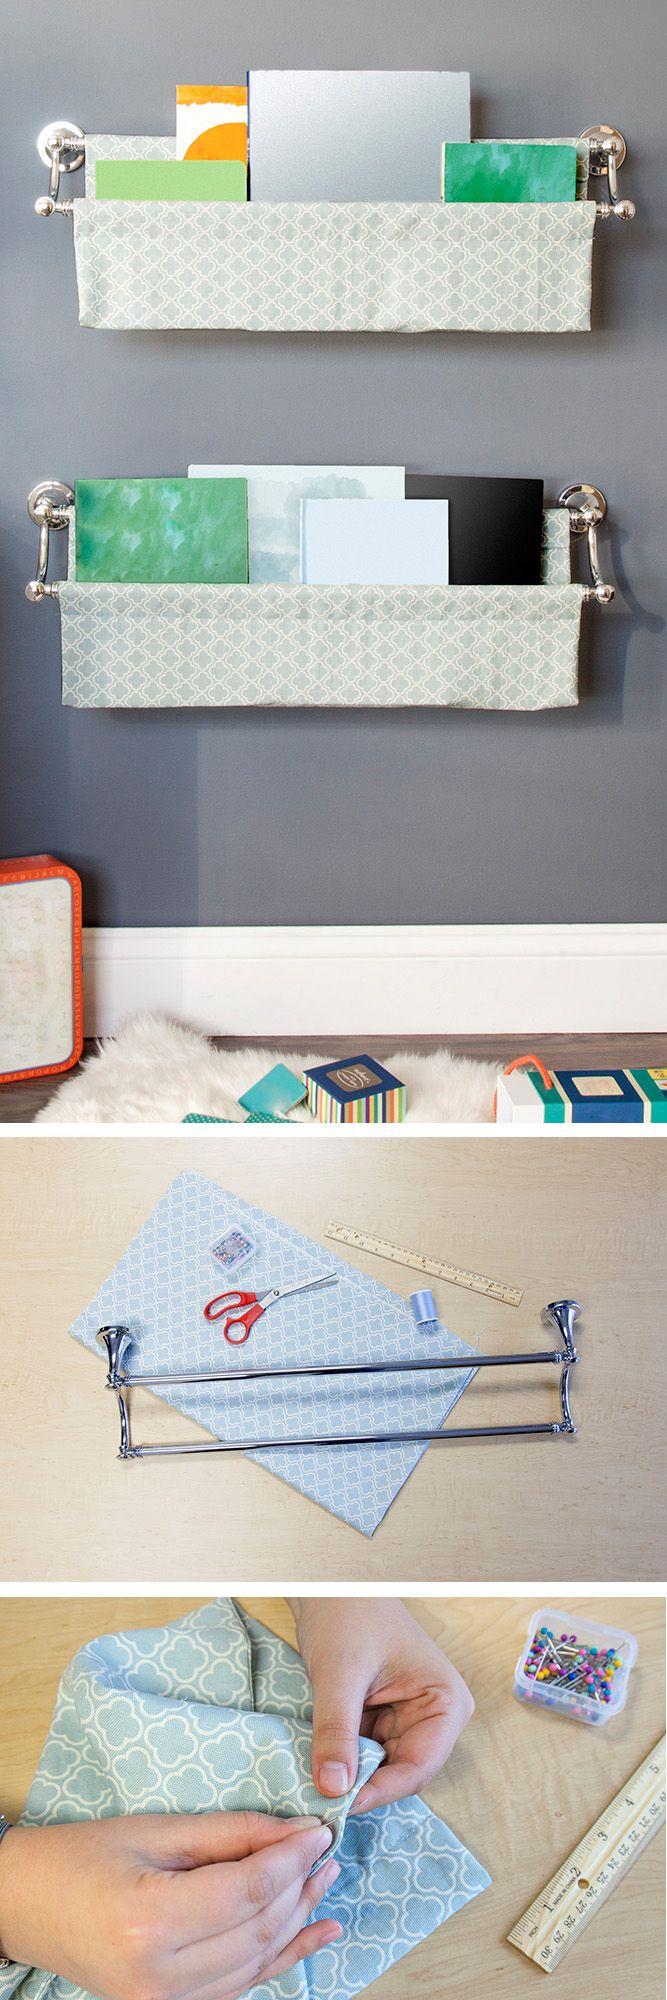 A book sling is an attractive way to organize and store books, especially in a child's room. This DIY book sling is easy to make; all you need is a double towel bar in your favorite finish and any fabric of your choice. Click through for the tutorial.